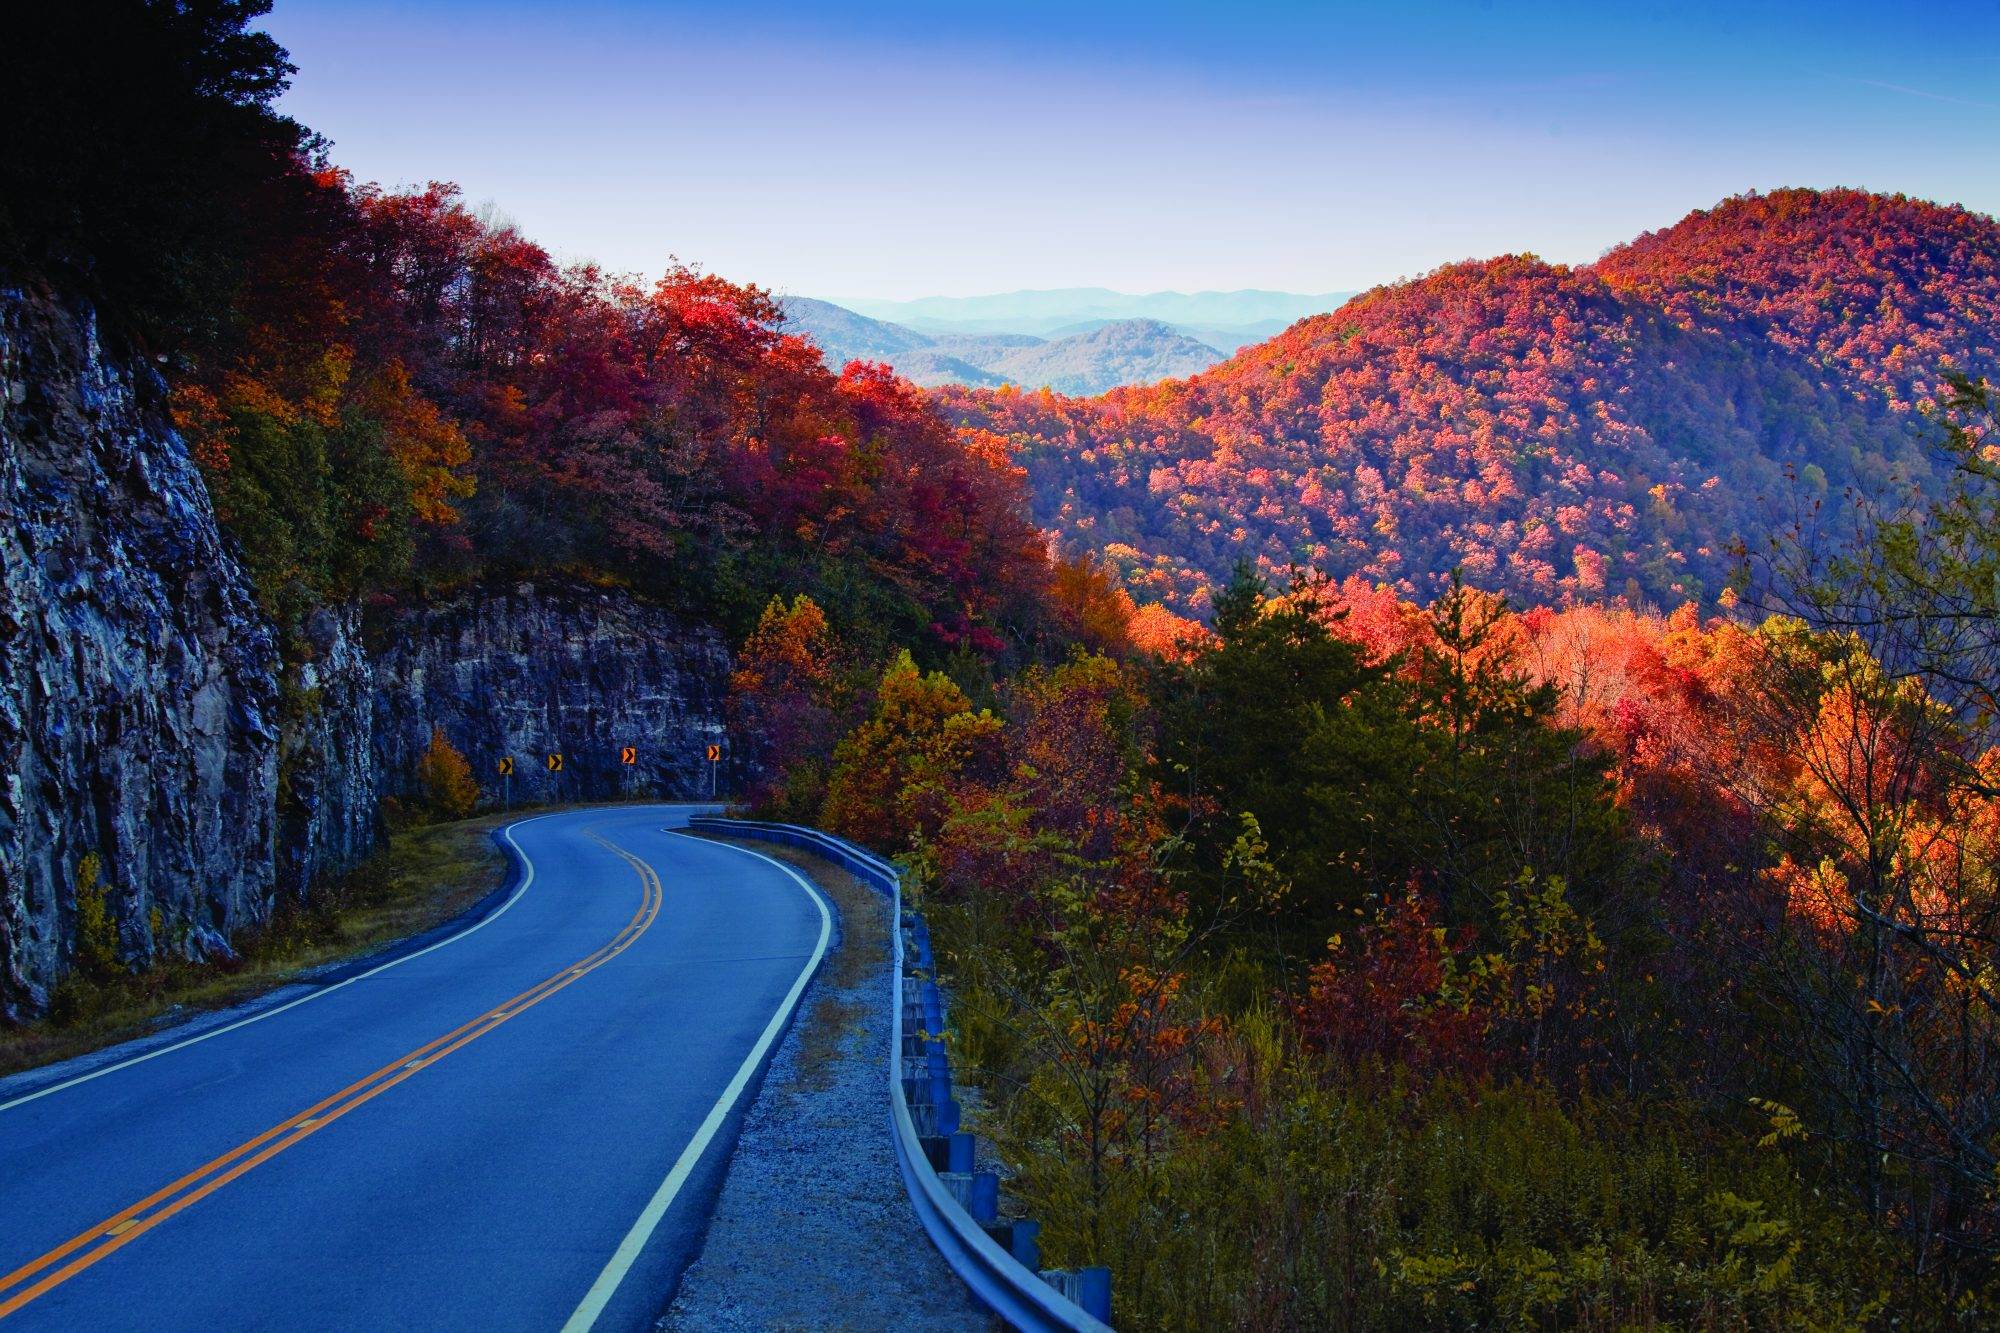 Russell-Brasstown Scenic Byway Fall Color